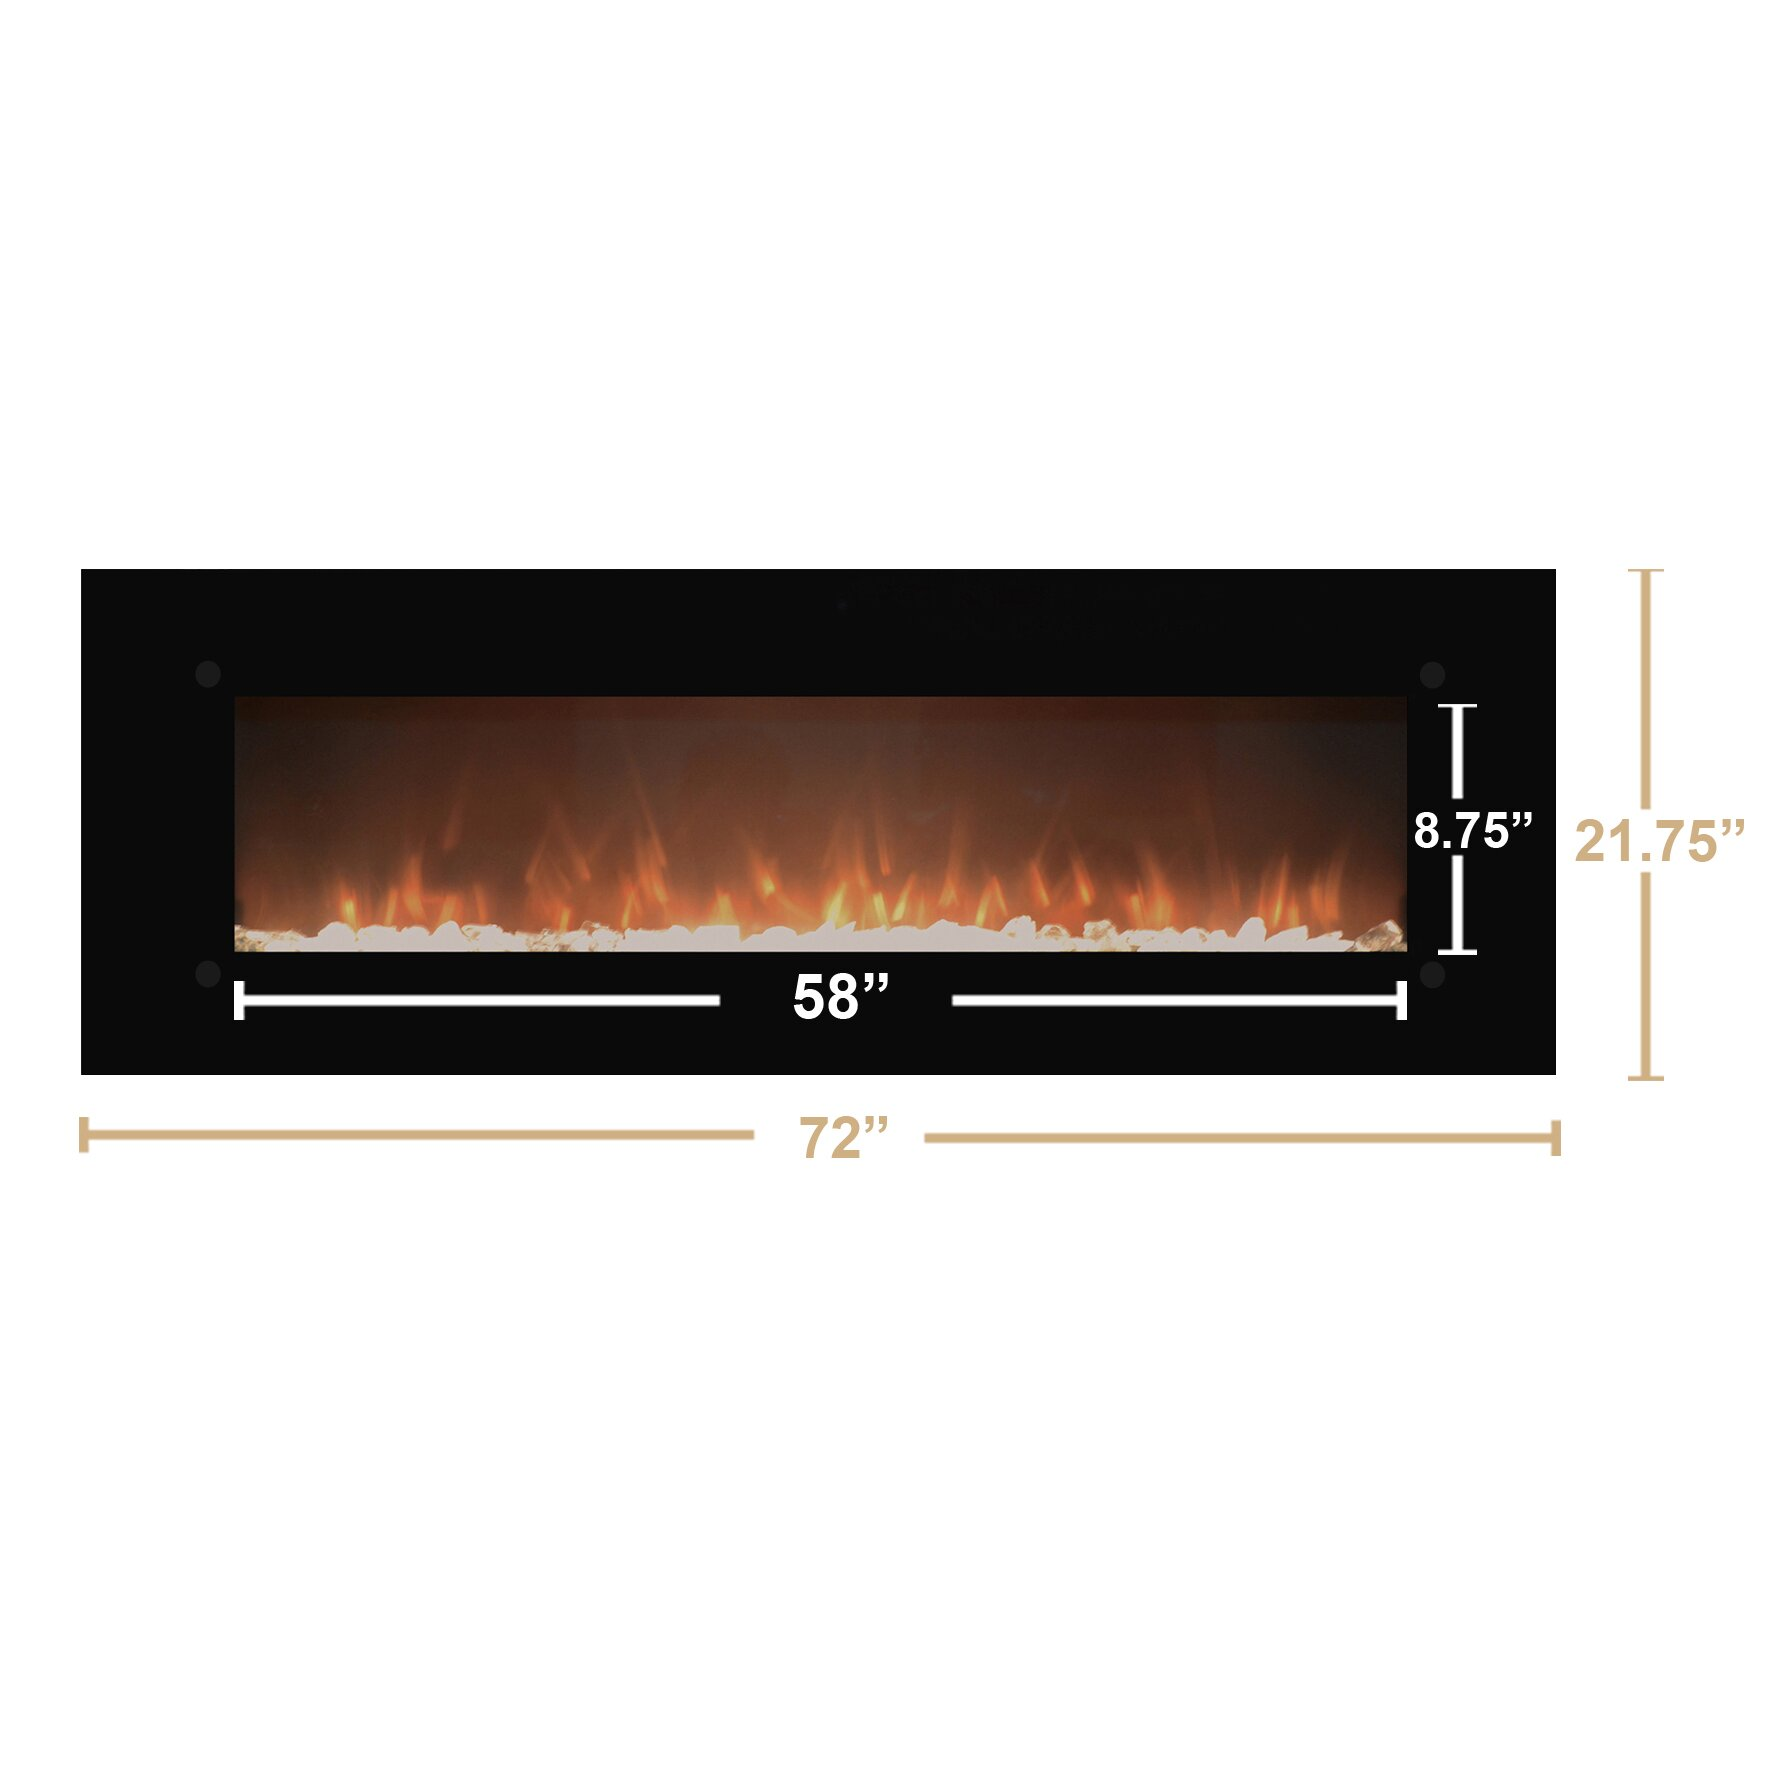 Touchstone Onyxxl Wall Mount Electric Fireplace Reviews Wayfair